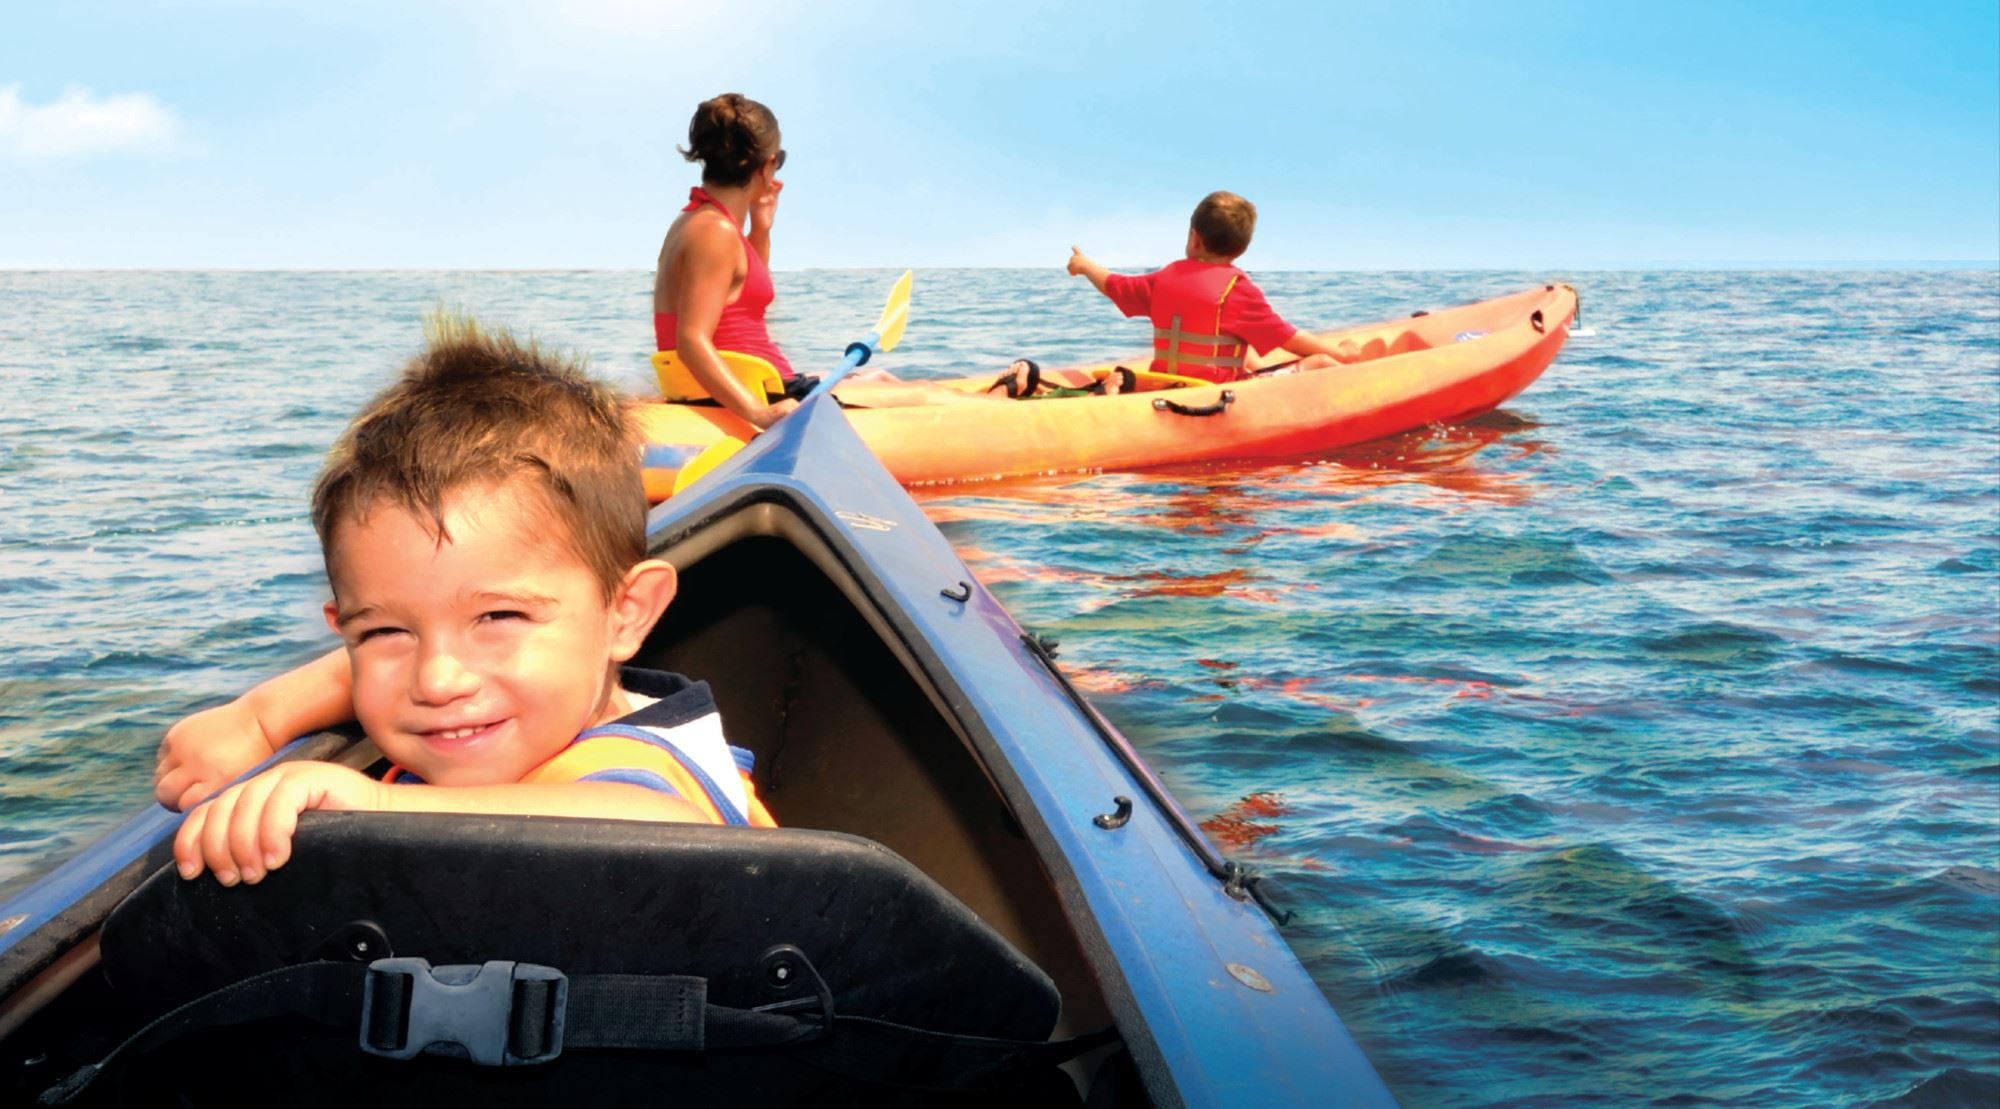 Boy riding in kayak with his family on a lake